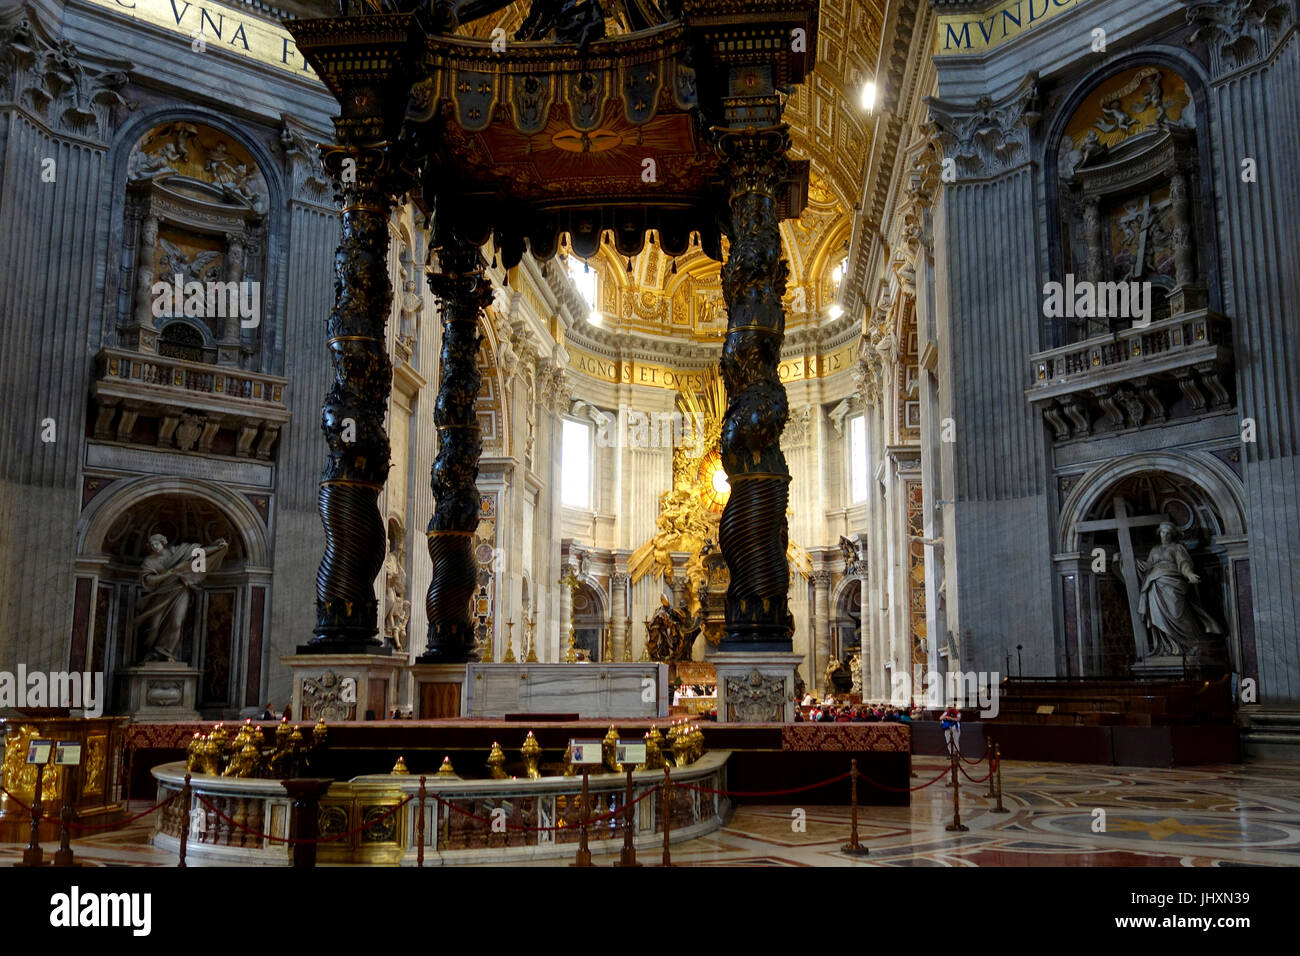 Interior, St Peter's Basilica, Rome, Italy - Stock Image